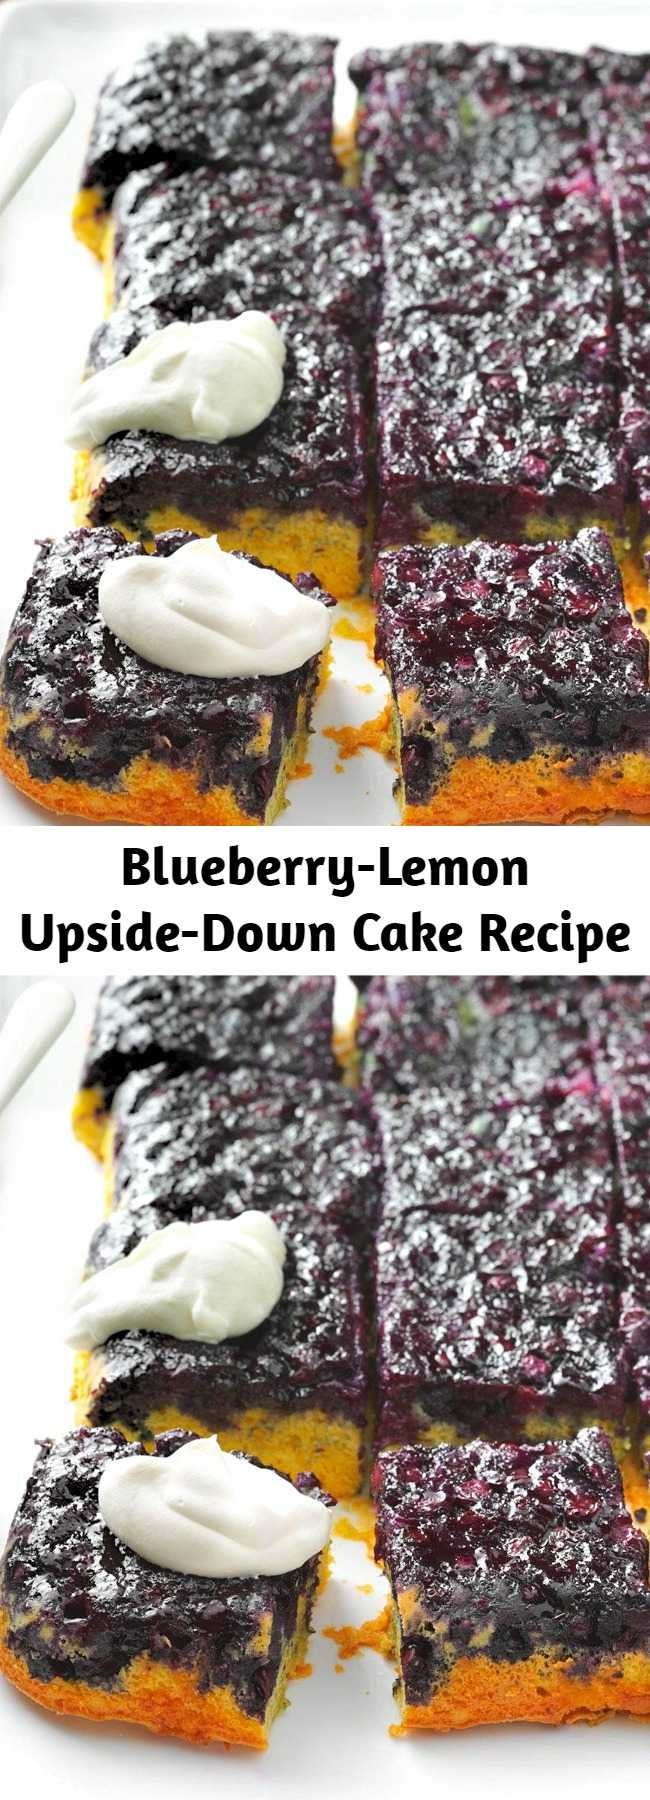 Blueberry-Lemon Upside-Down Cake Recipe - We love a good upside-down cake, and this our favorite one yet. The blueberries get super-juicy as they bake—it's the perfect representation of spring!